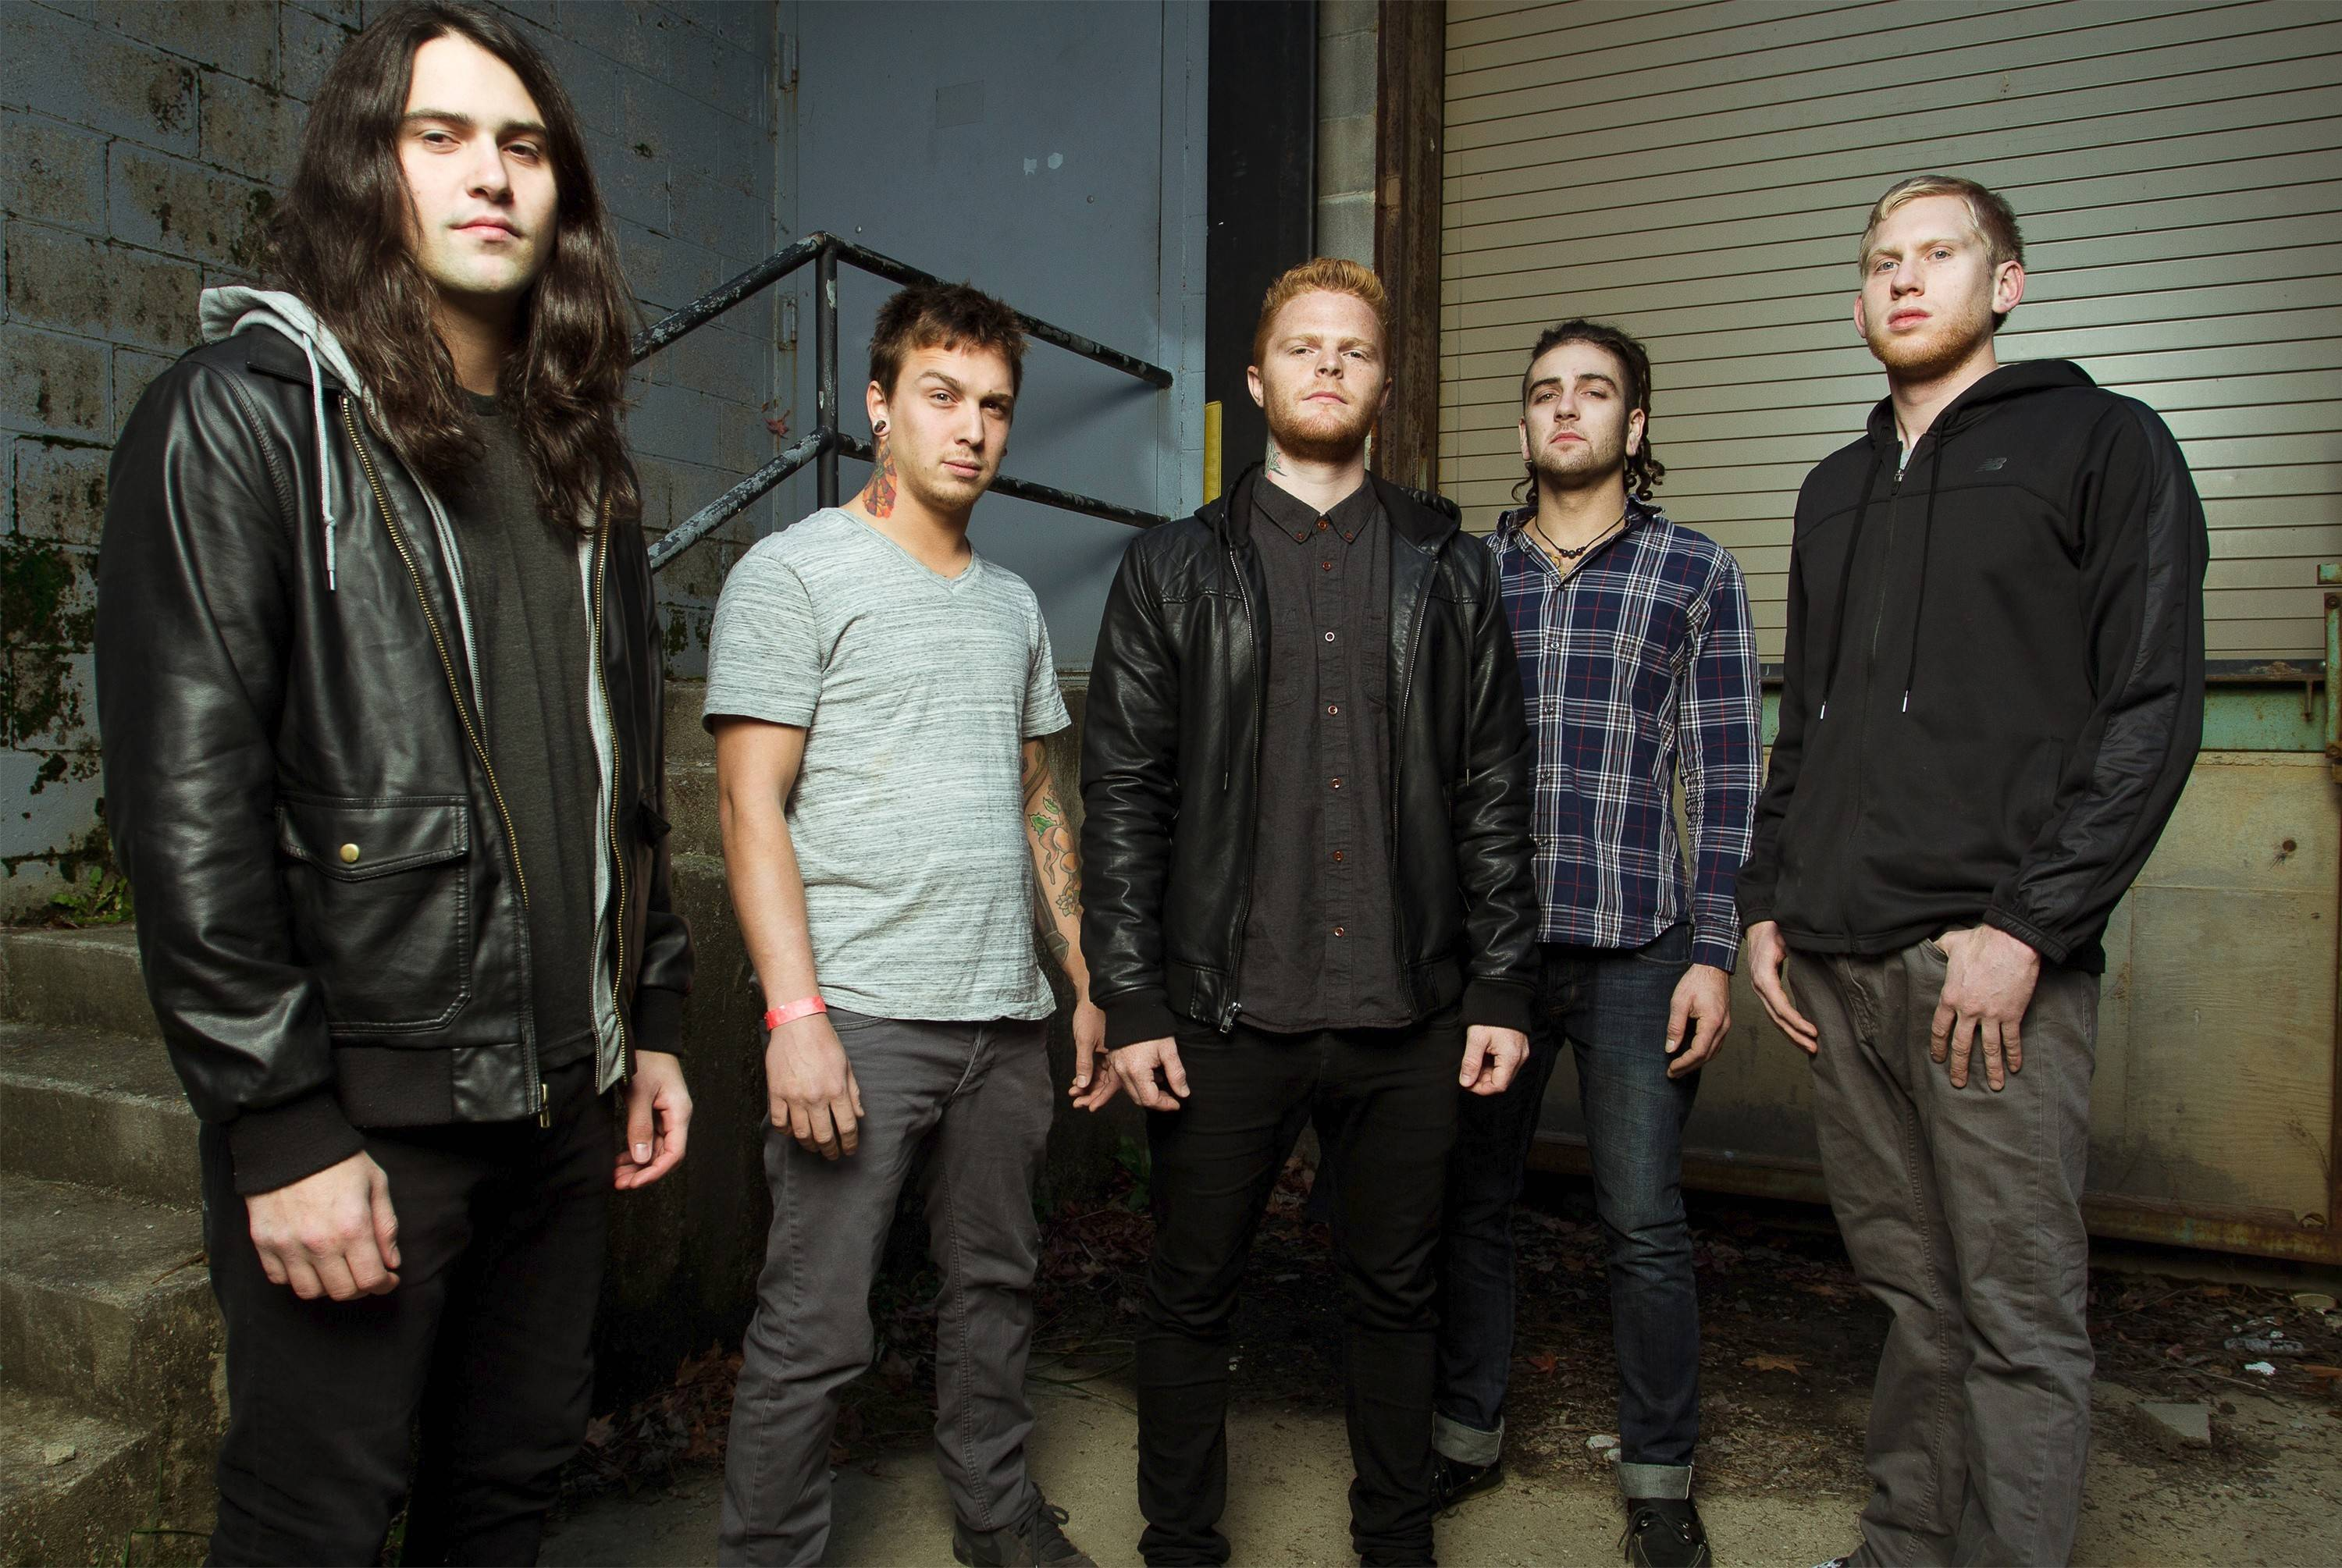 Born of Osiris, a metal band featuring members from the suburbs, will perform as part of Warped Tour this weekend.